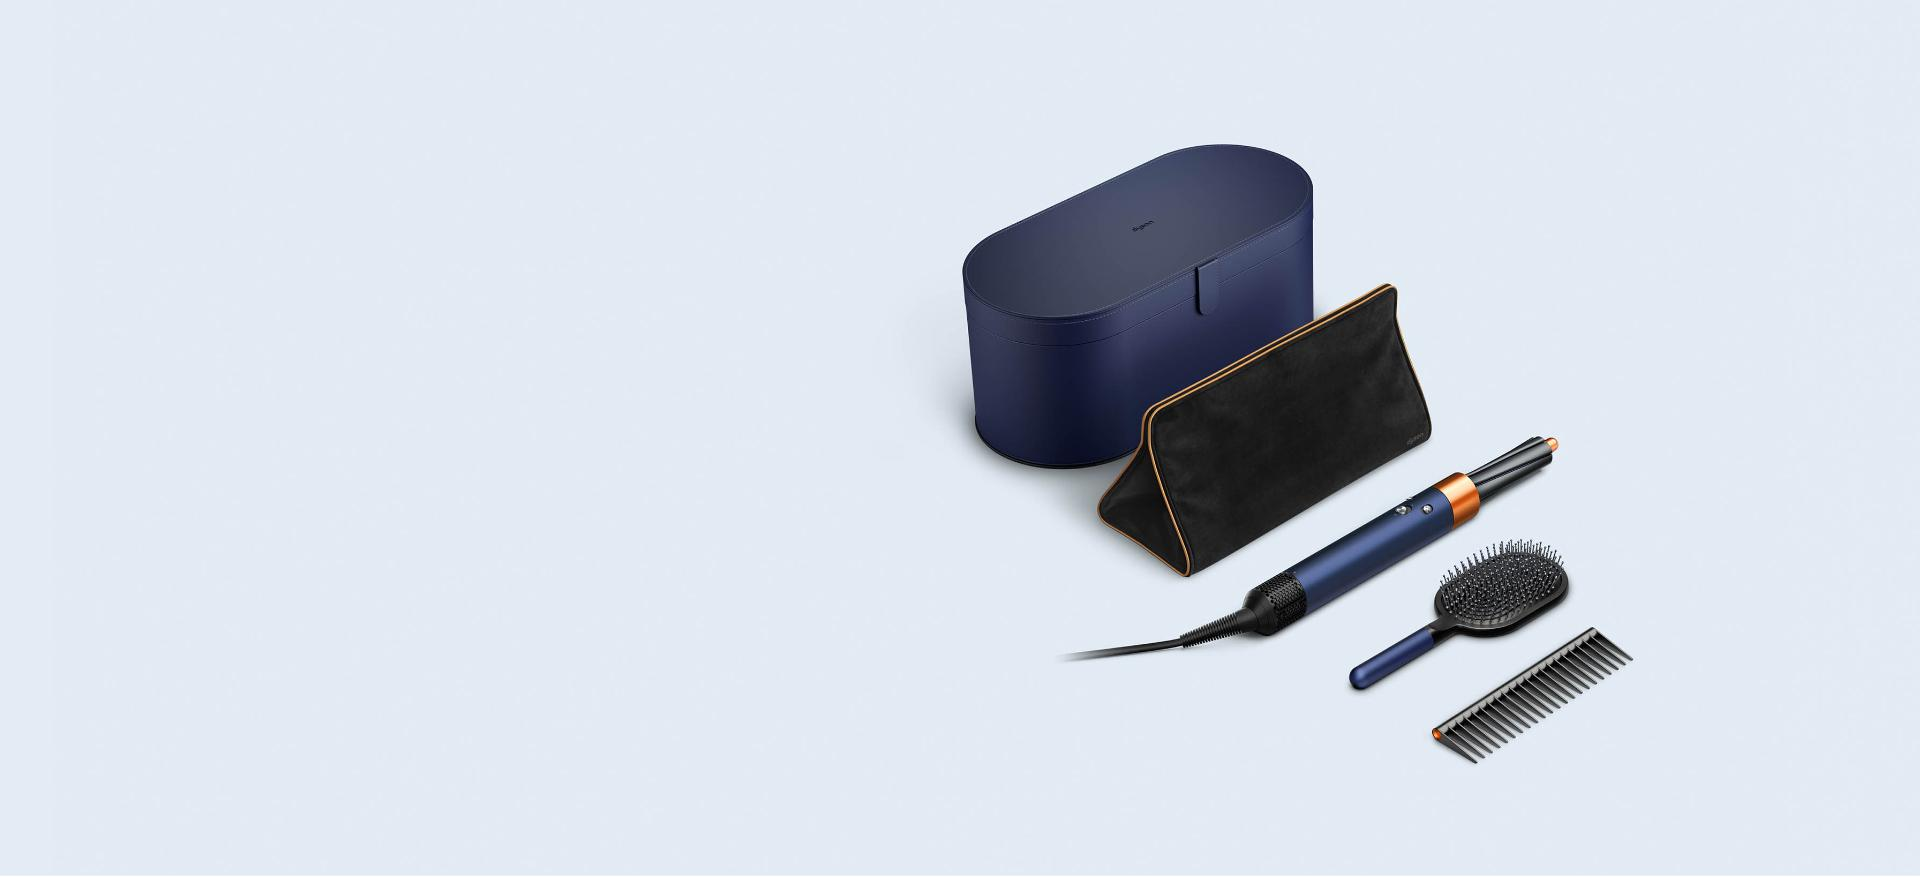 Dyson Airwrap styler and Supersonic hair dryer in Prussian blue and rich copper